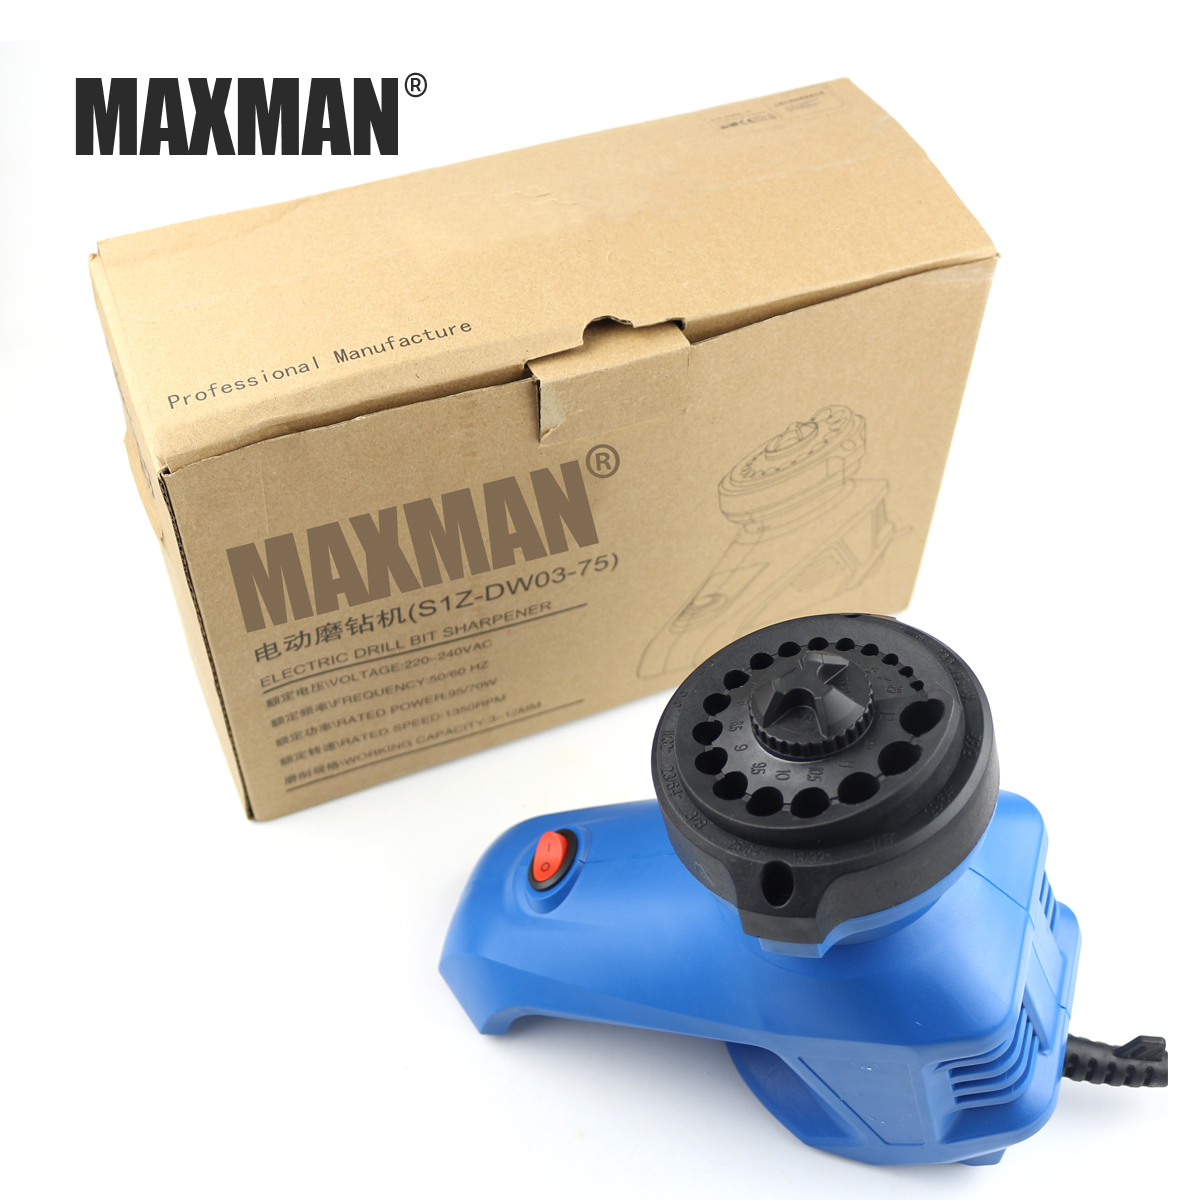 96W 1350 rpm Professional Electric Sharpener Machine Kit for Grind and Drill Bit